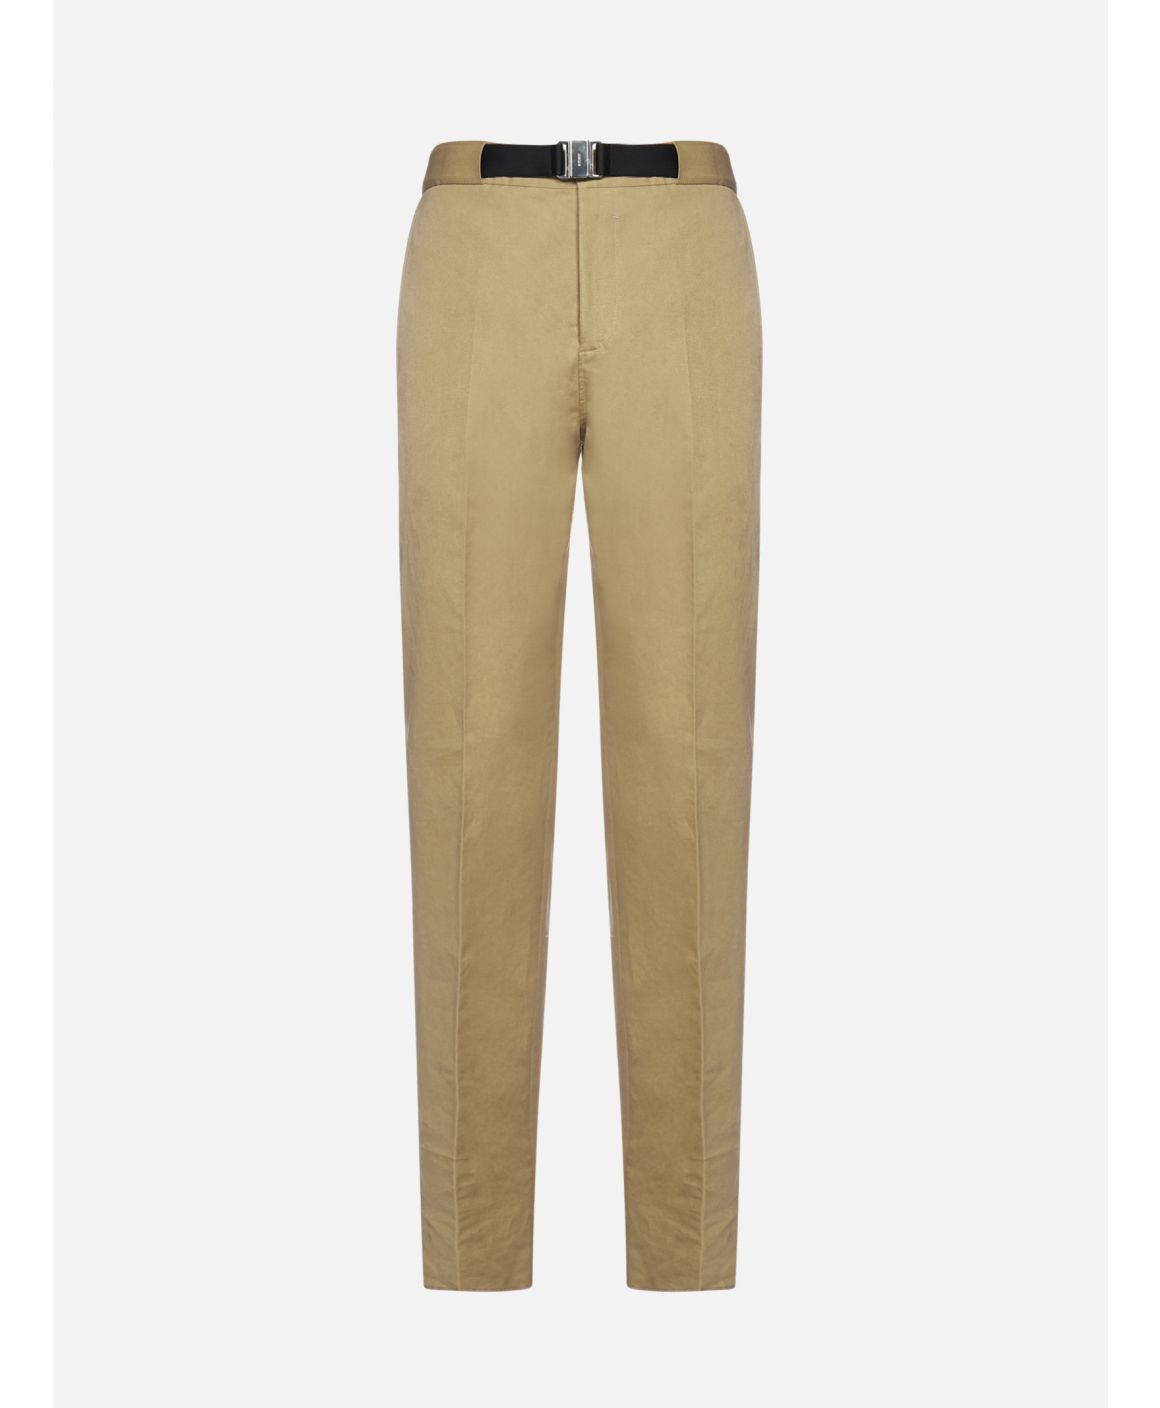 Belted cotton and linen trousers